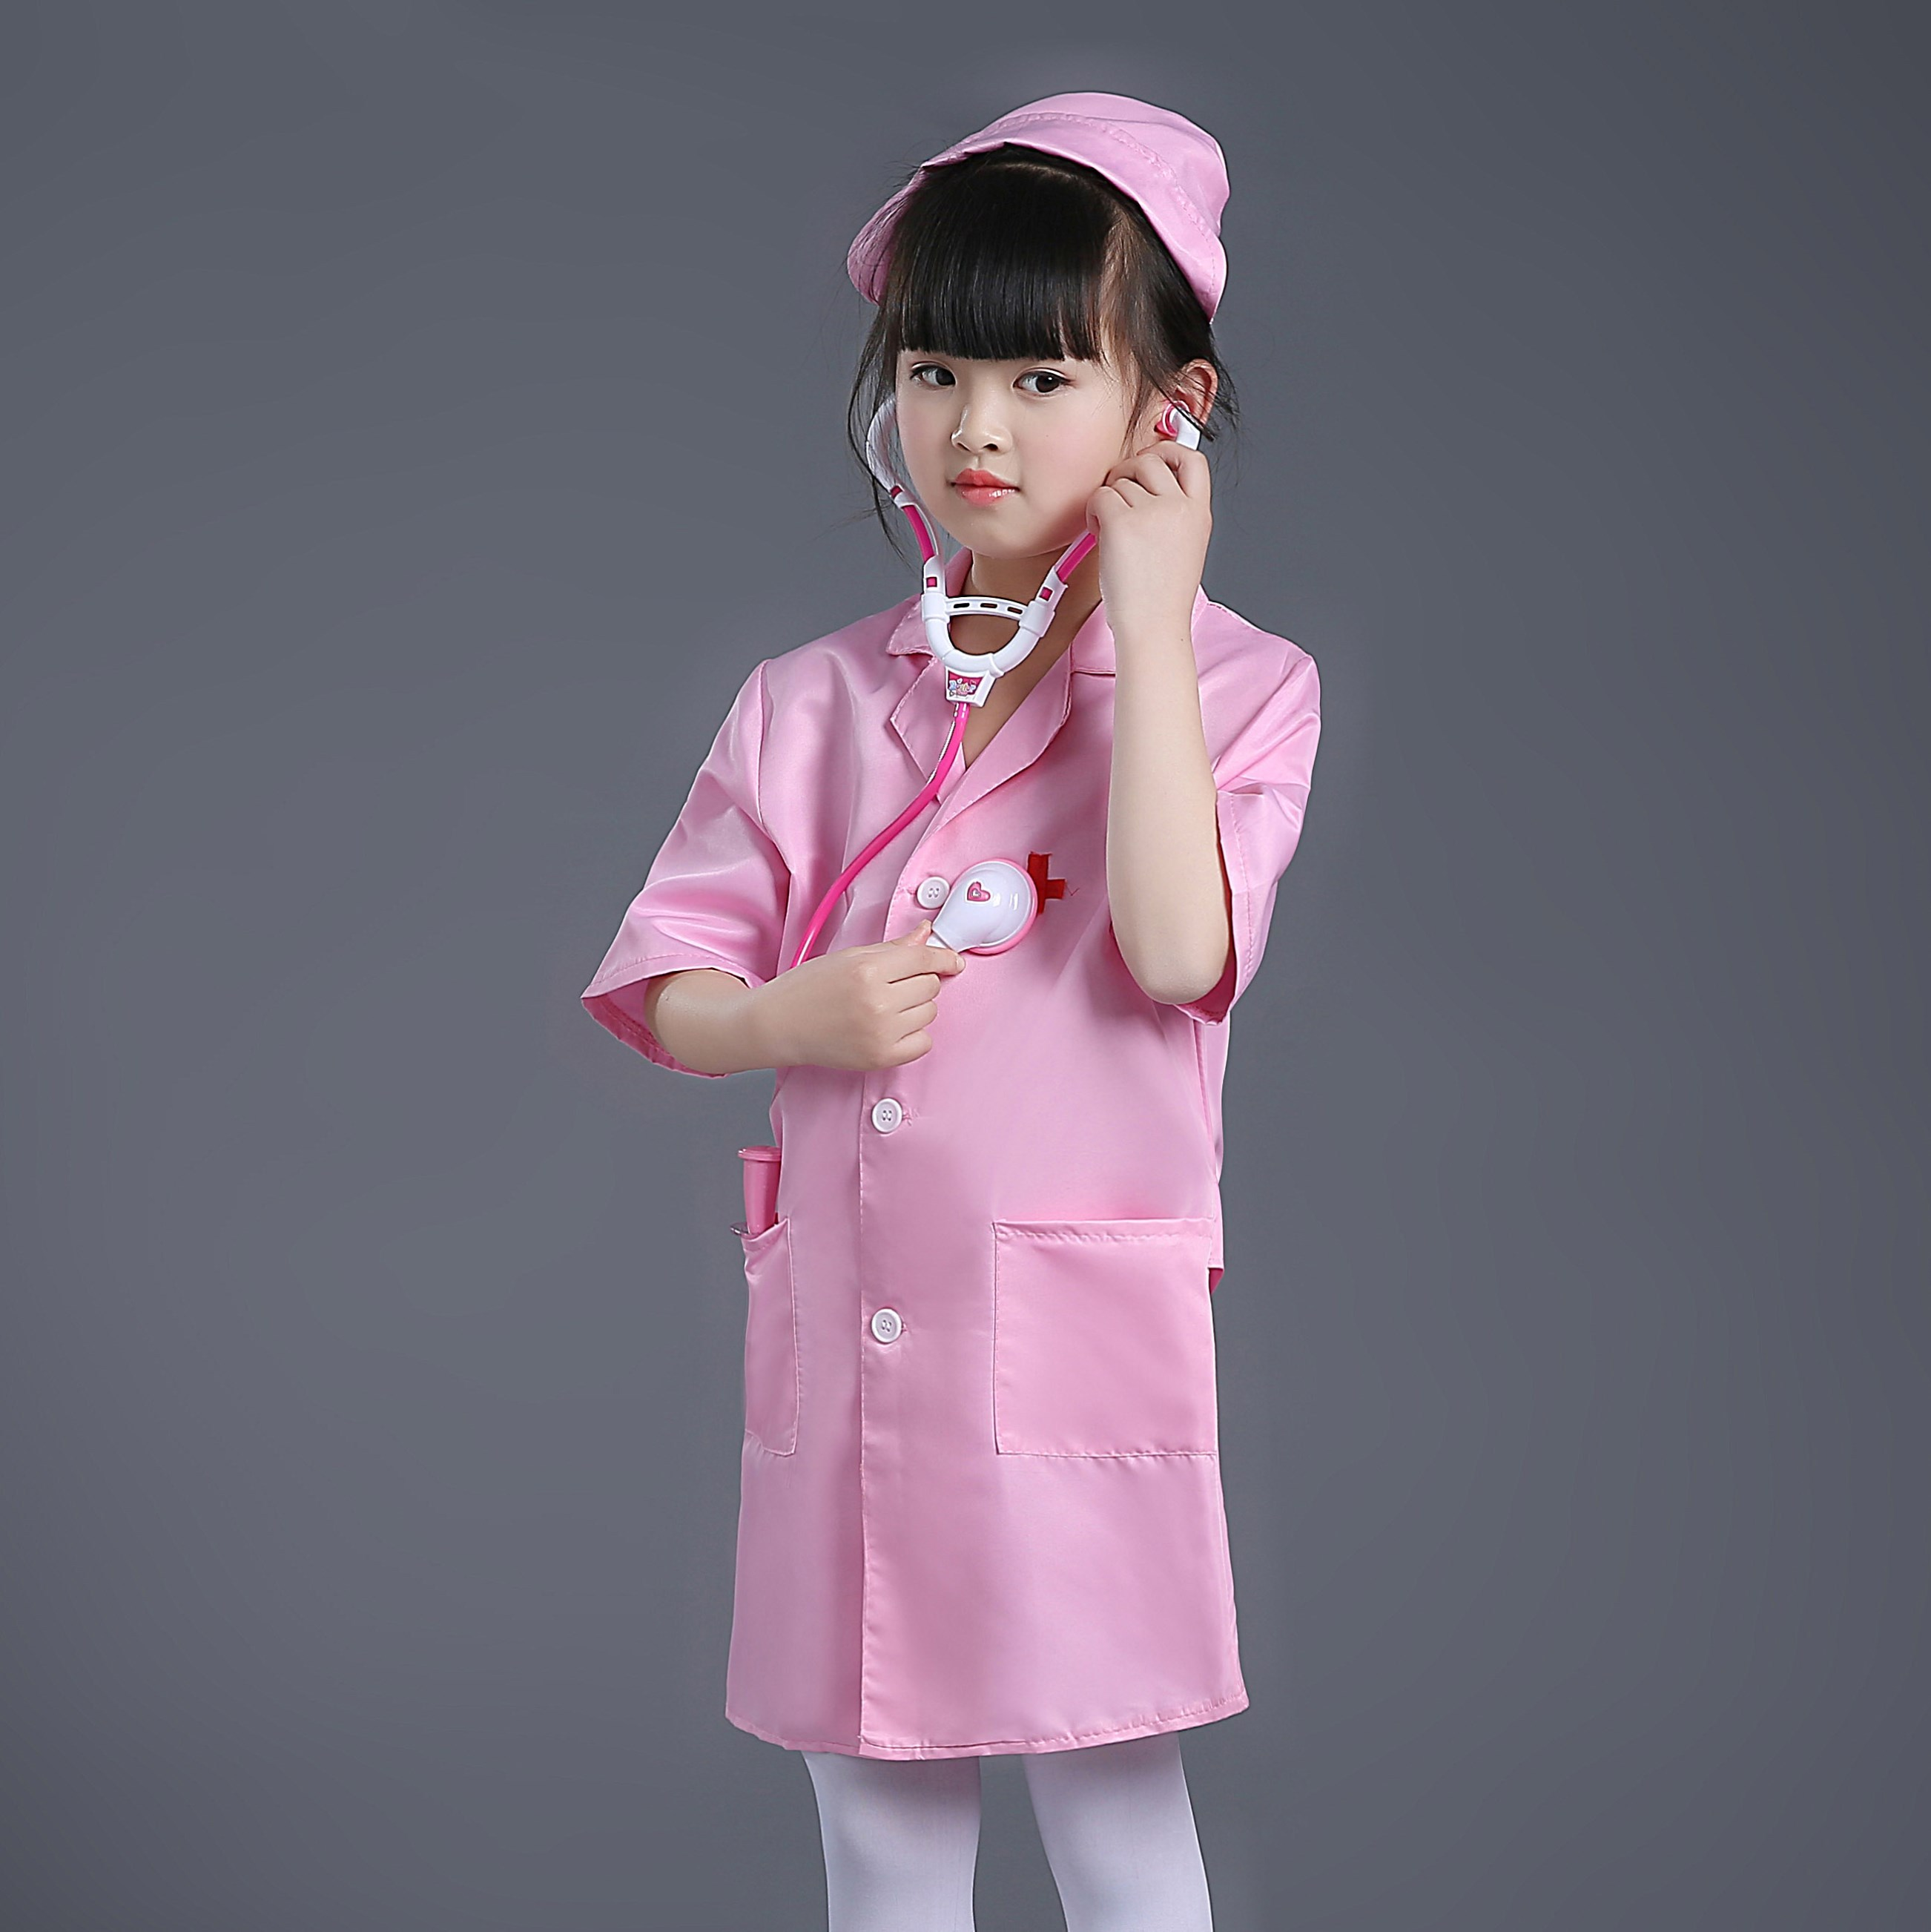 A kind of The nurse plays the role of small white dress and slim coat